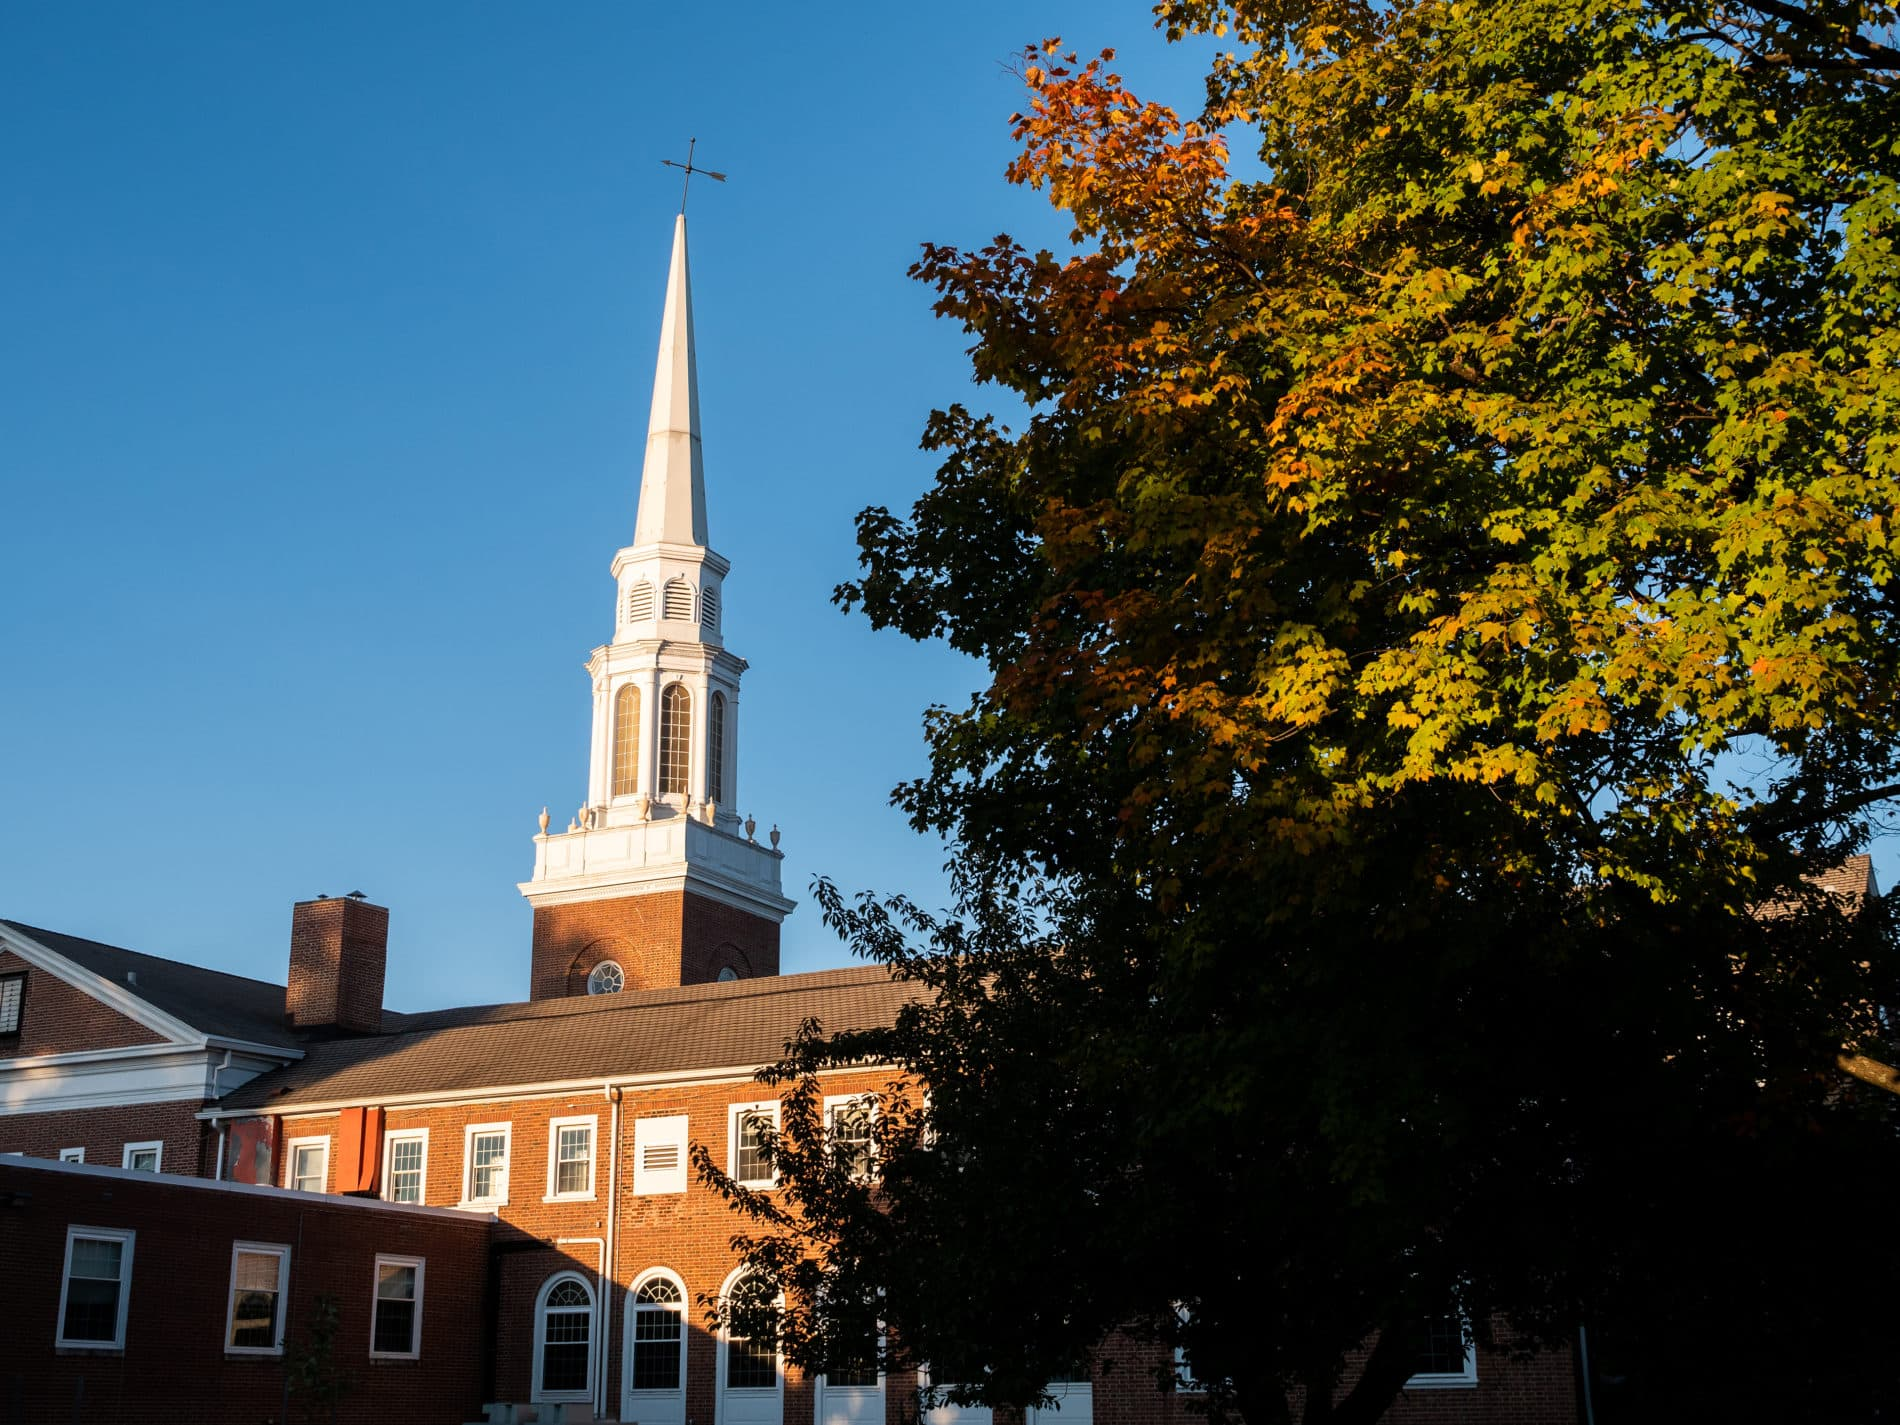 Exterior image of Catonsville Presbyterian Church at sunrise